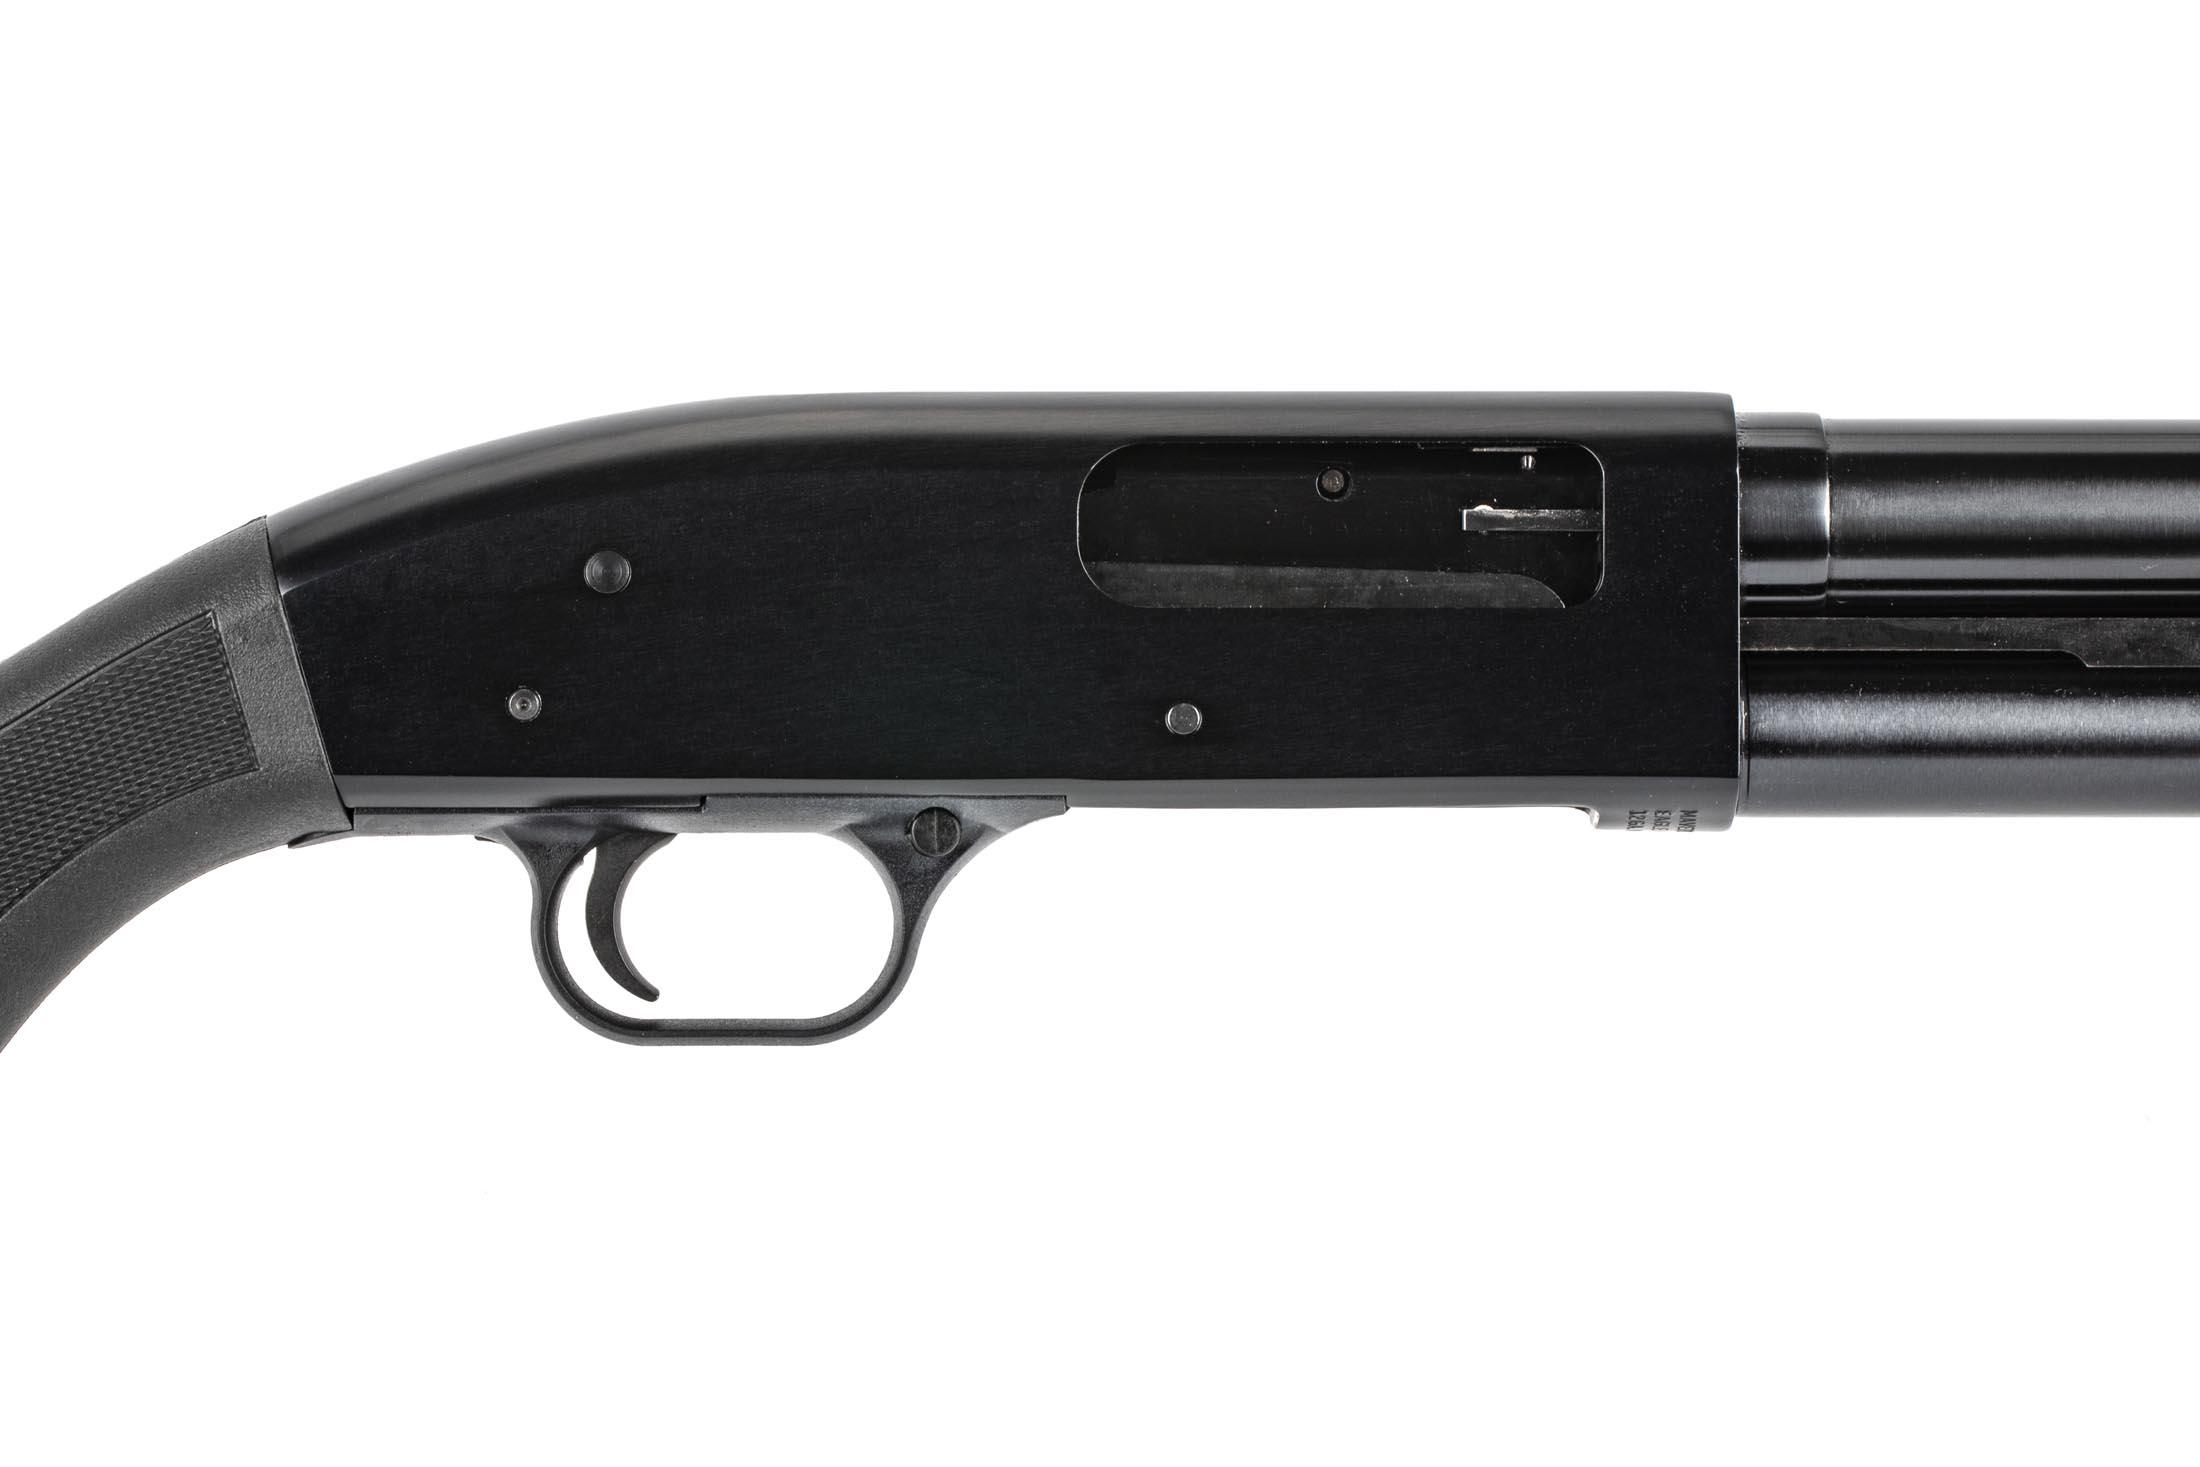 Mossberg Maverick 88 12 guage 18.5in synthetic furniture holds 8-rounds of 2 3/4in shells.